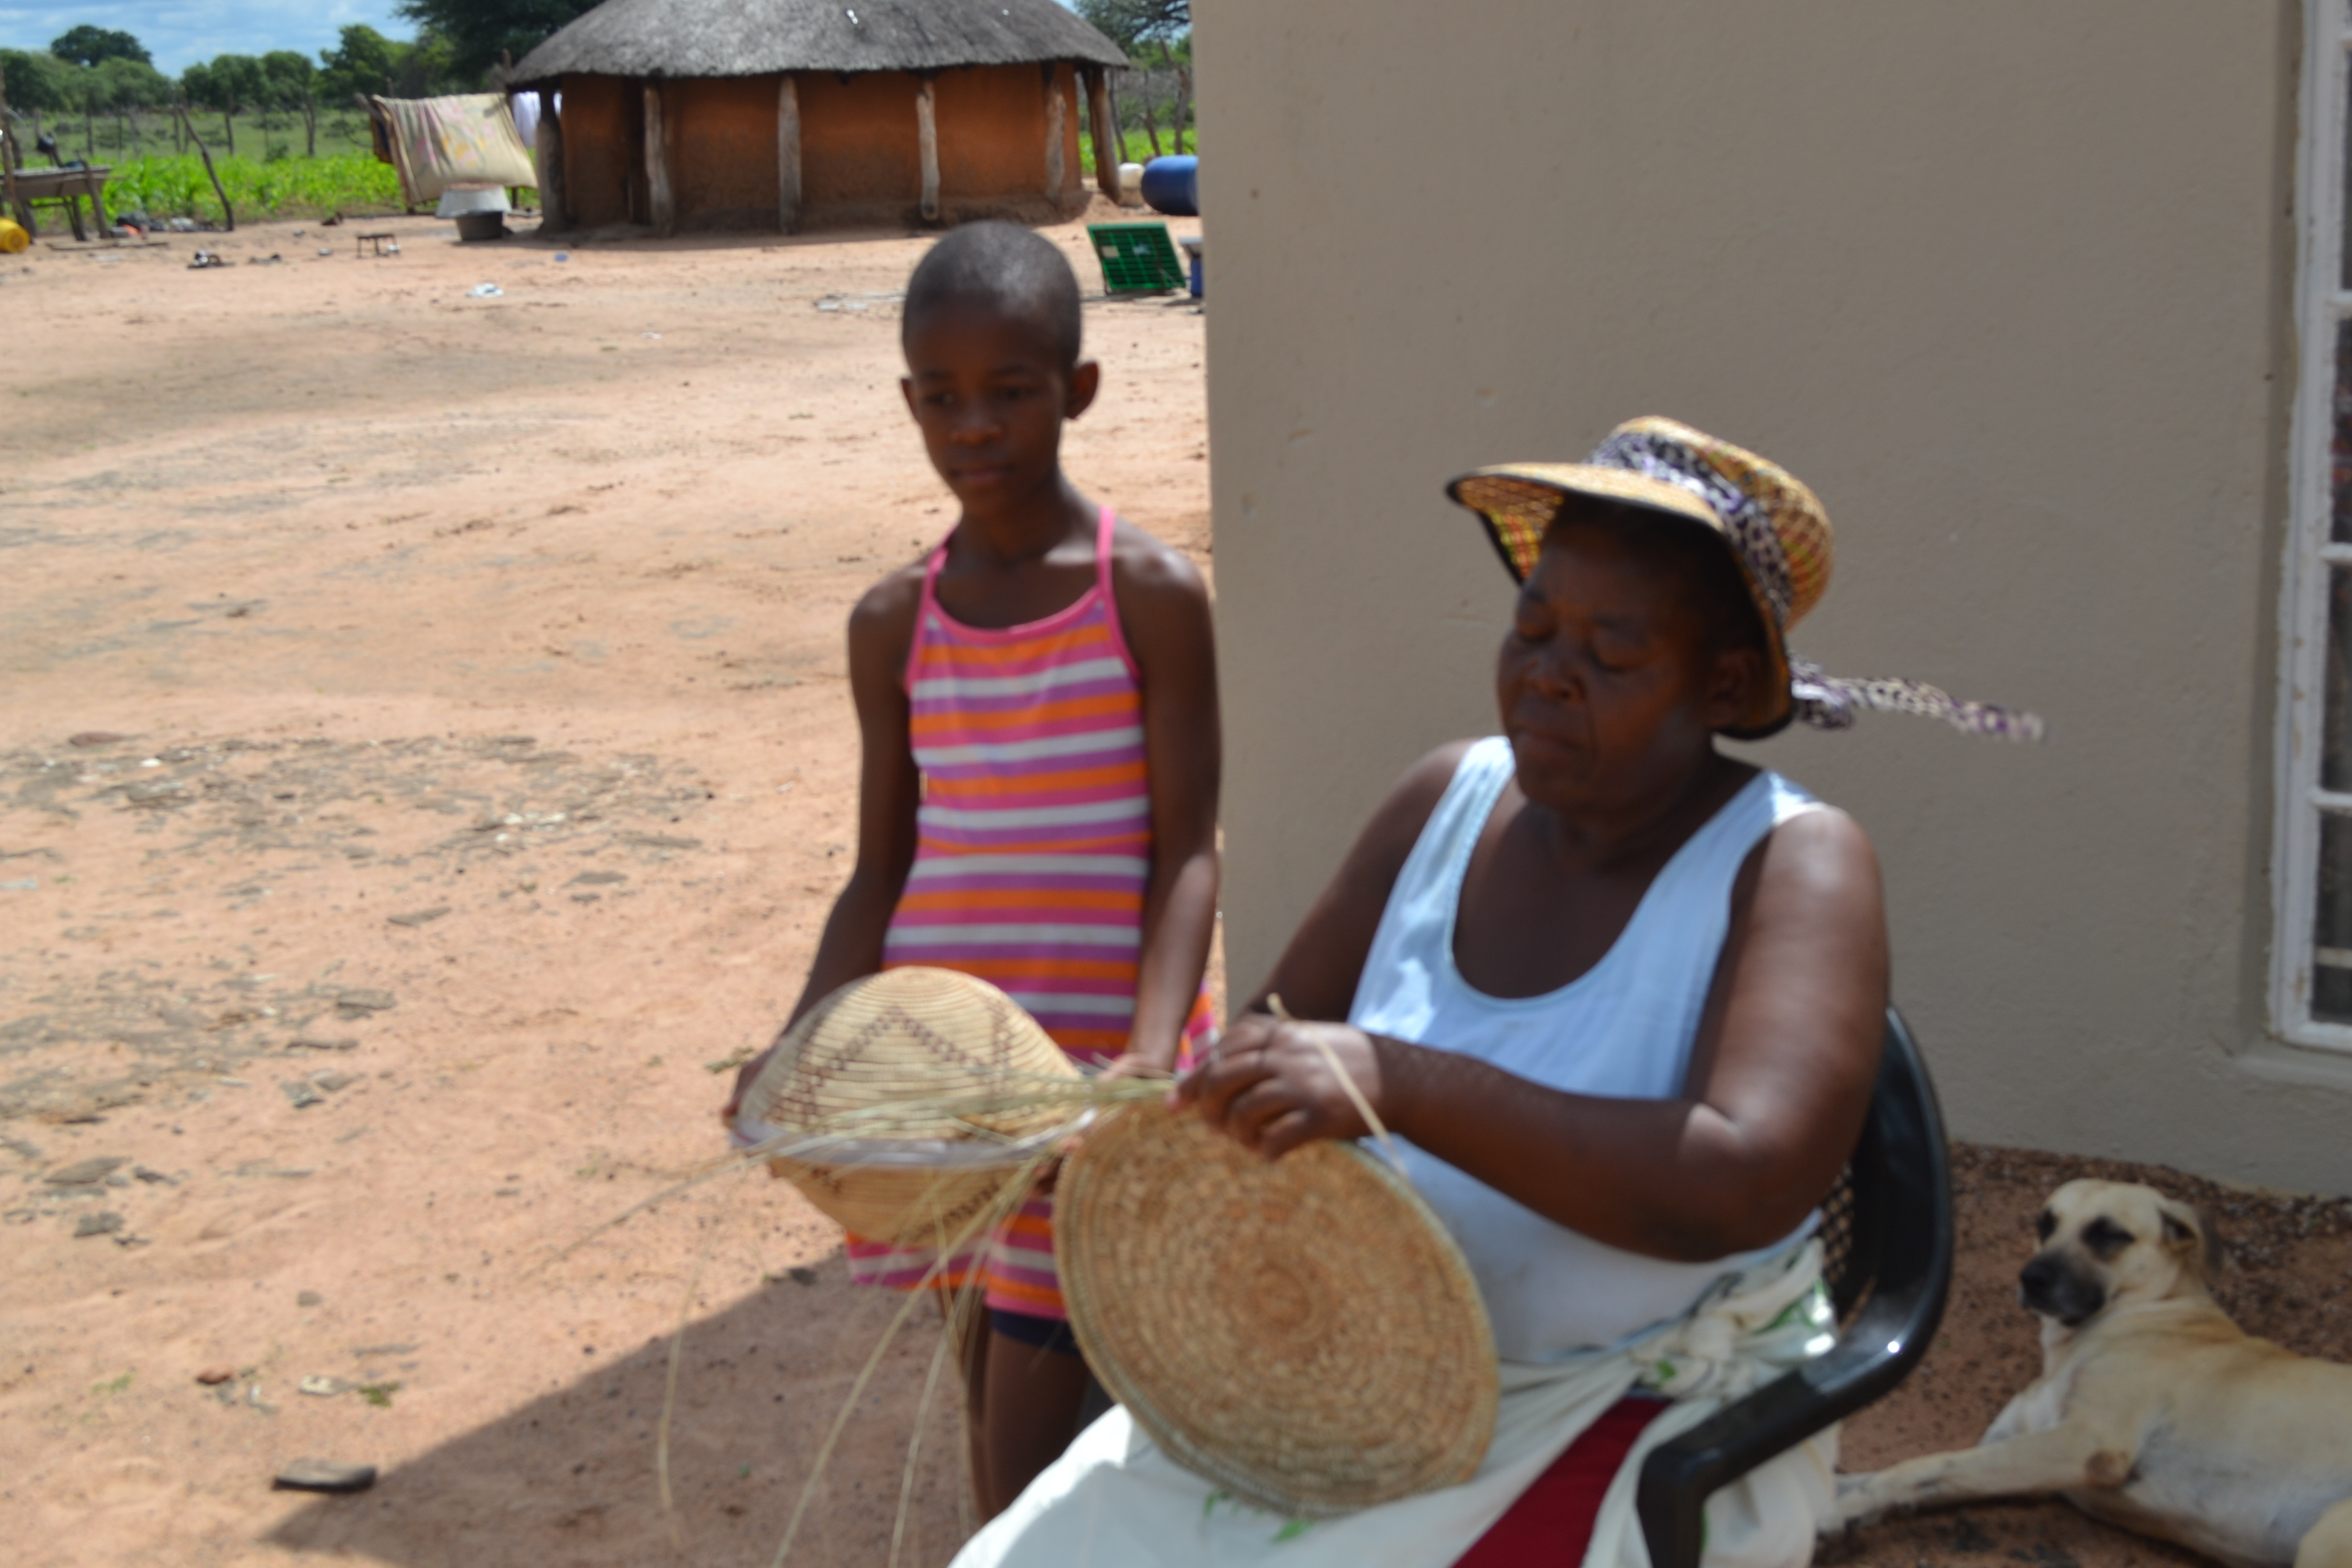 Villagers Prepare for the TiBaKalanga/We Are Kalanga Festival